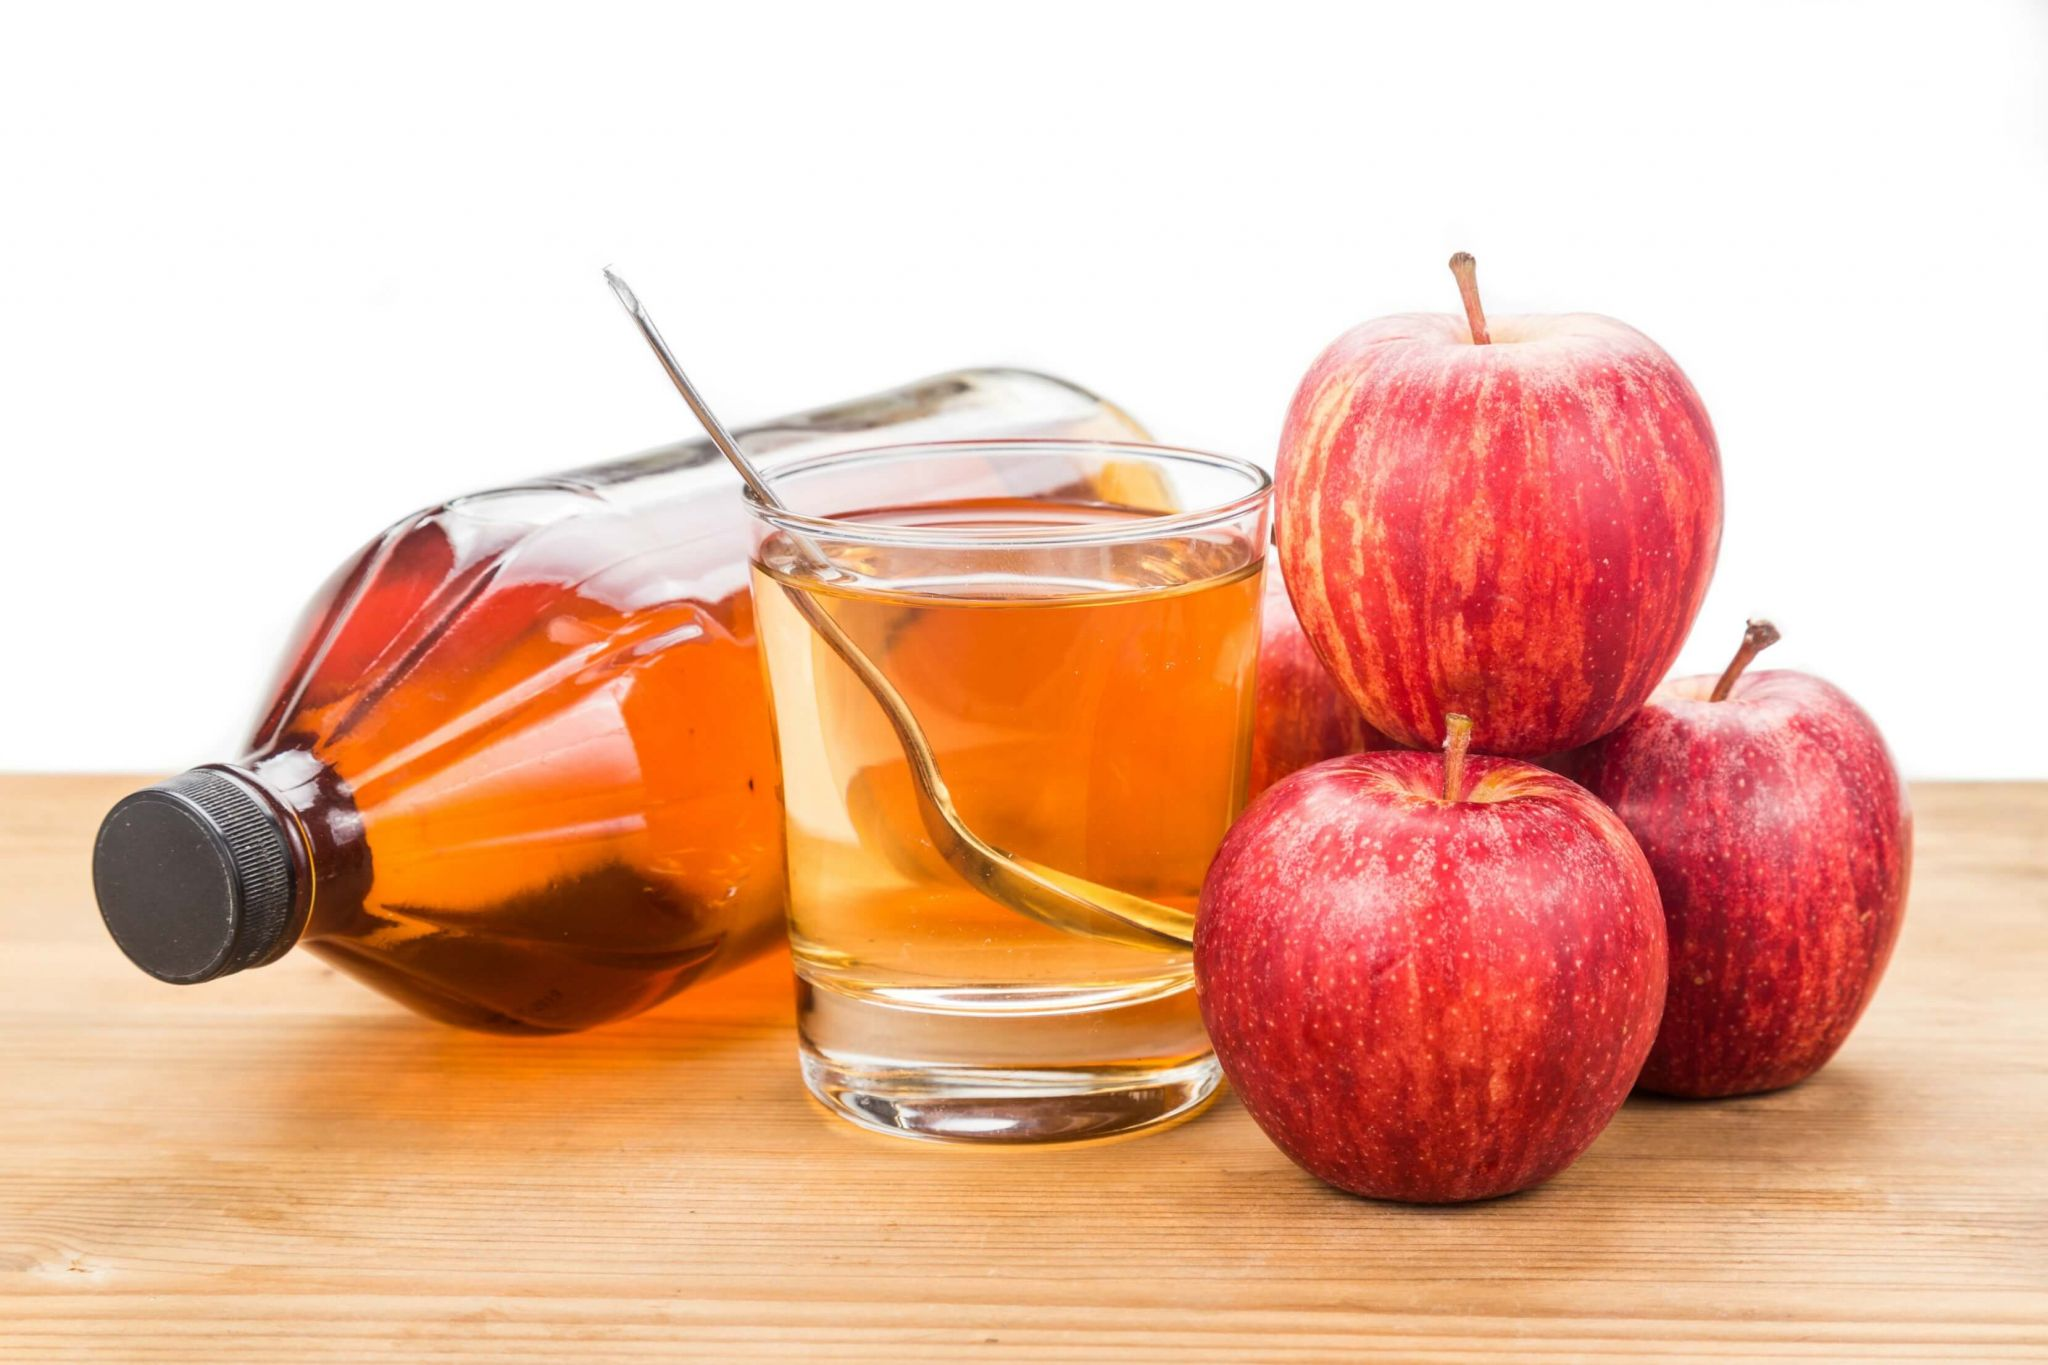 joint pain - apples and apple cider vinegar